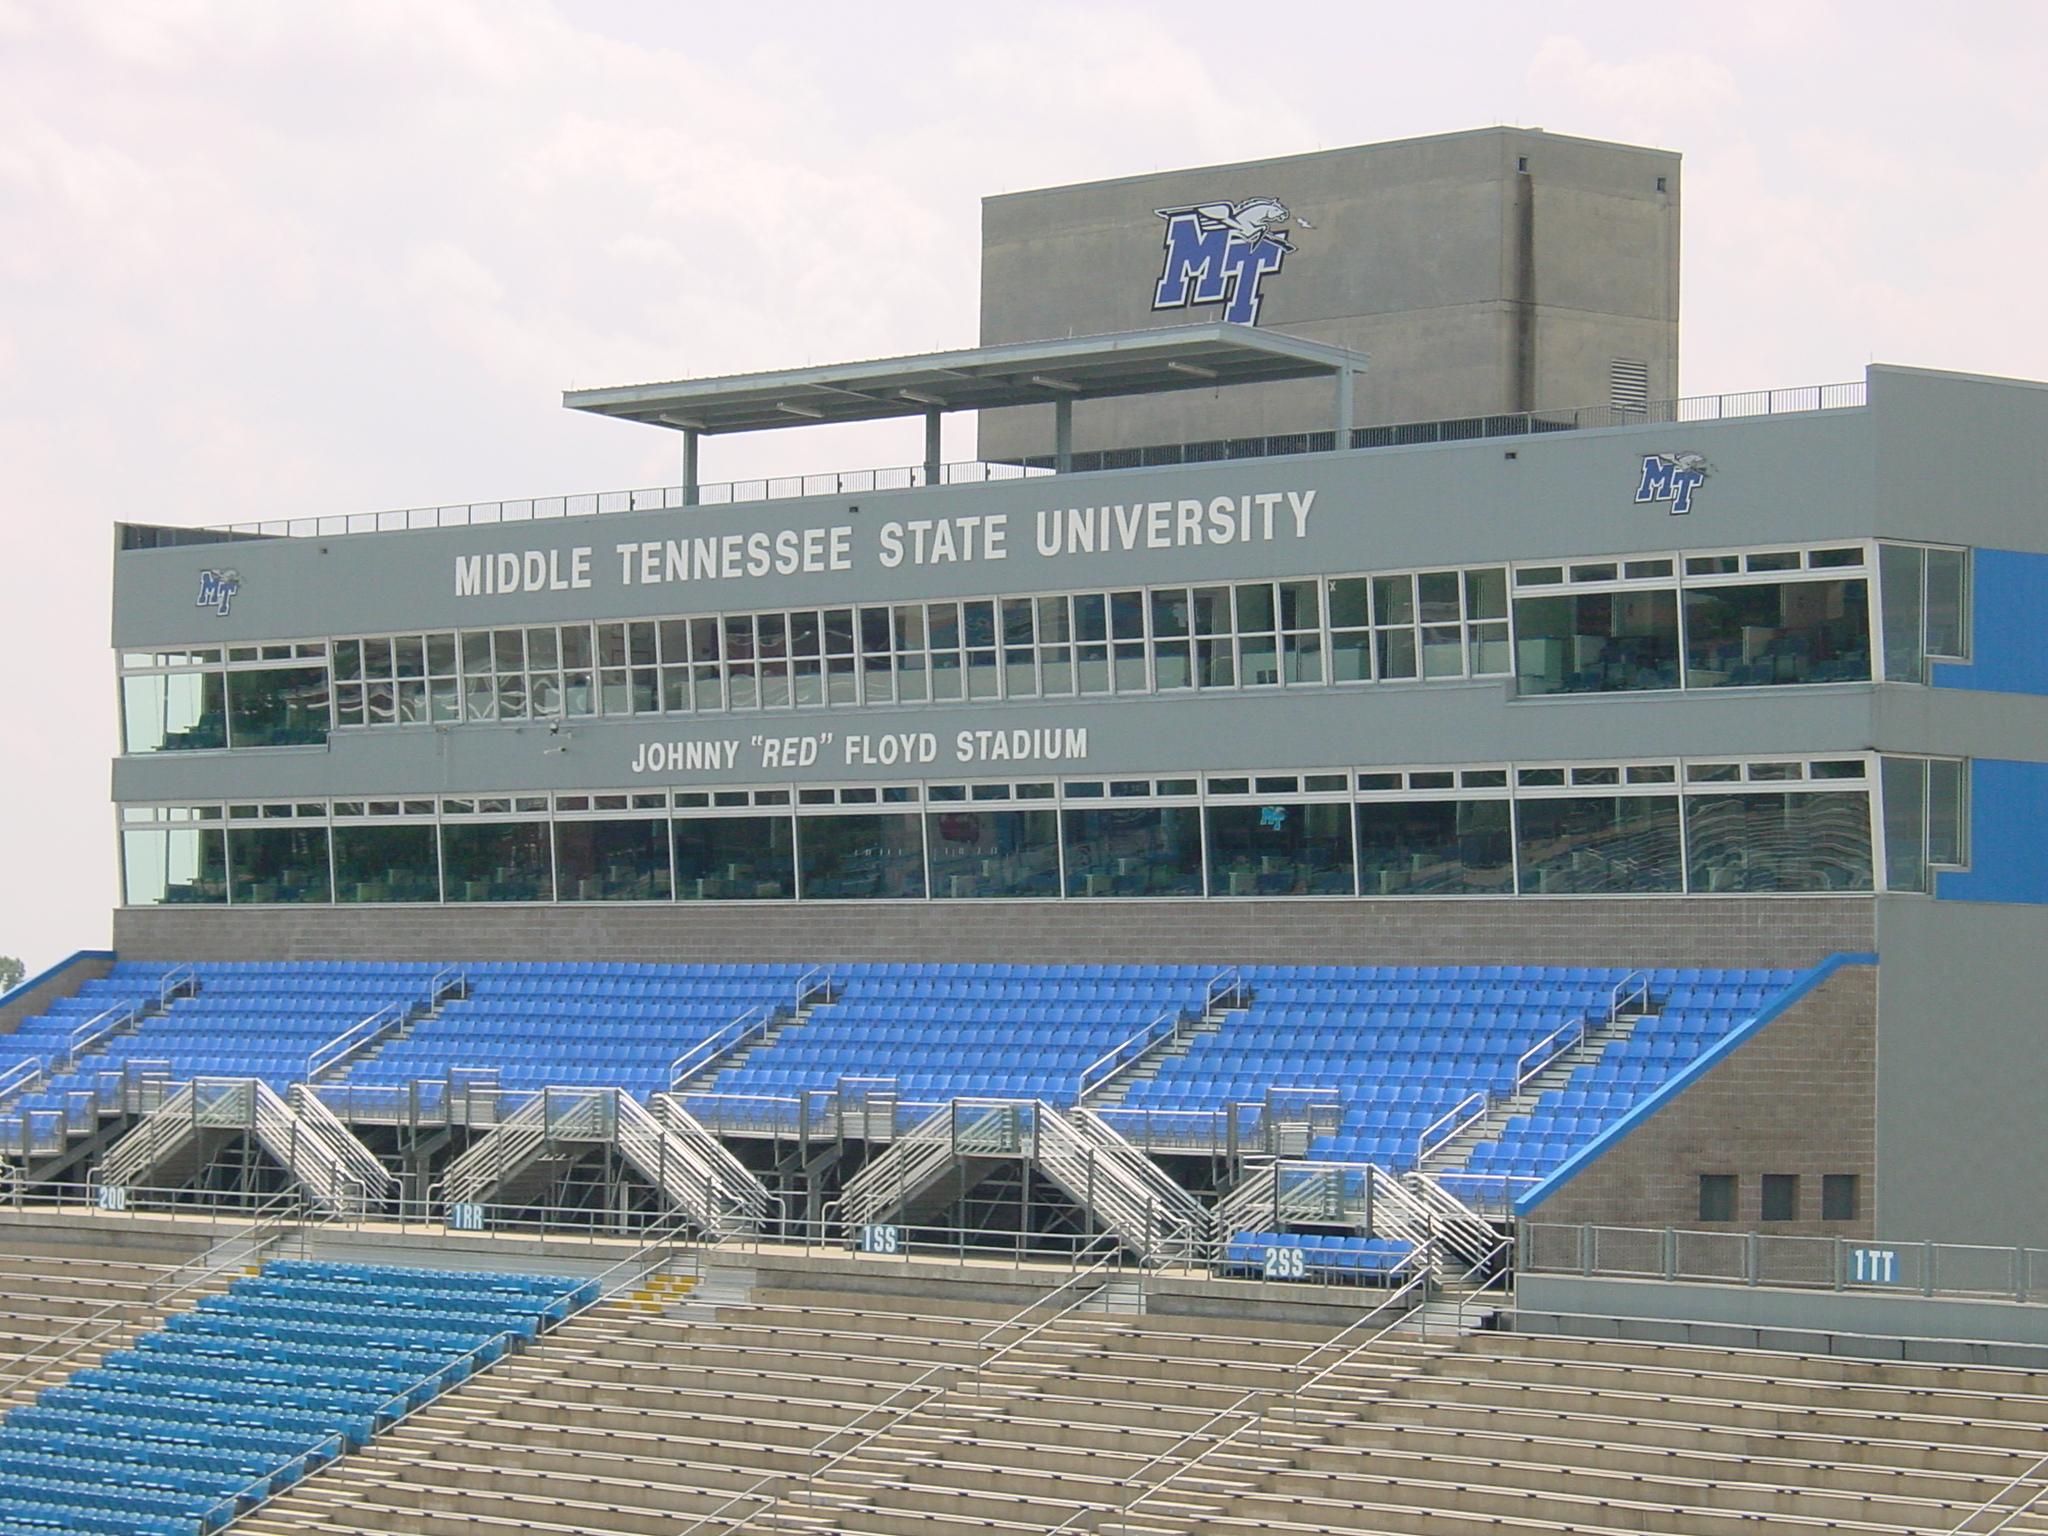 File:MTSU Pressbox.JPG - Wikimedia Commons